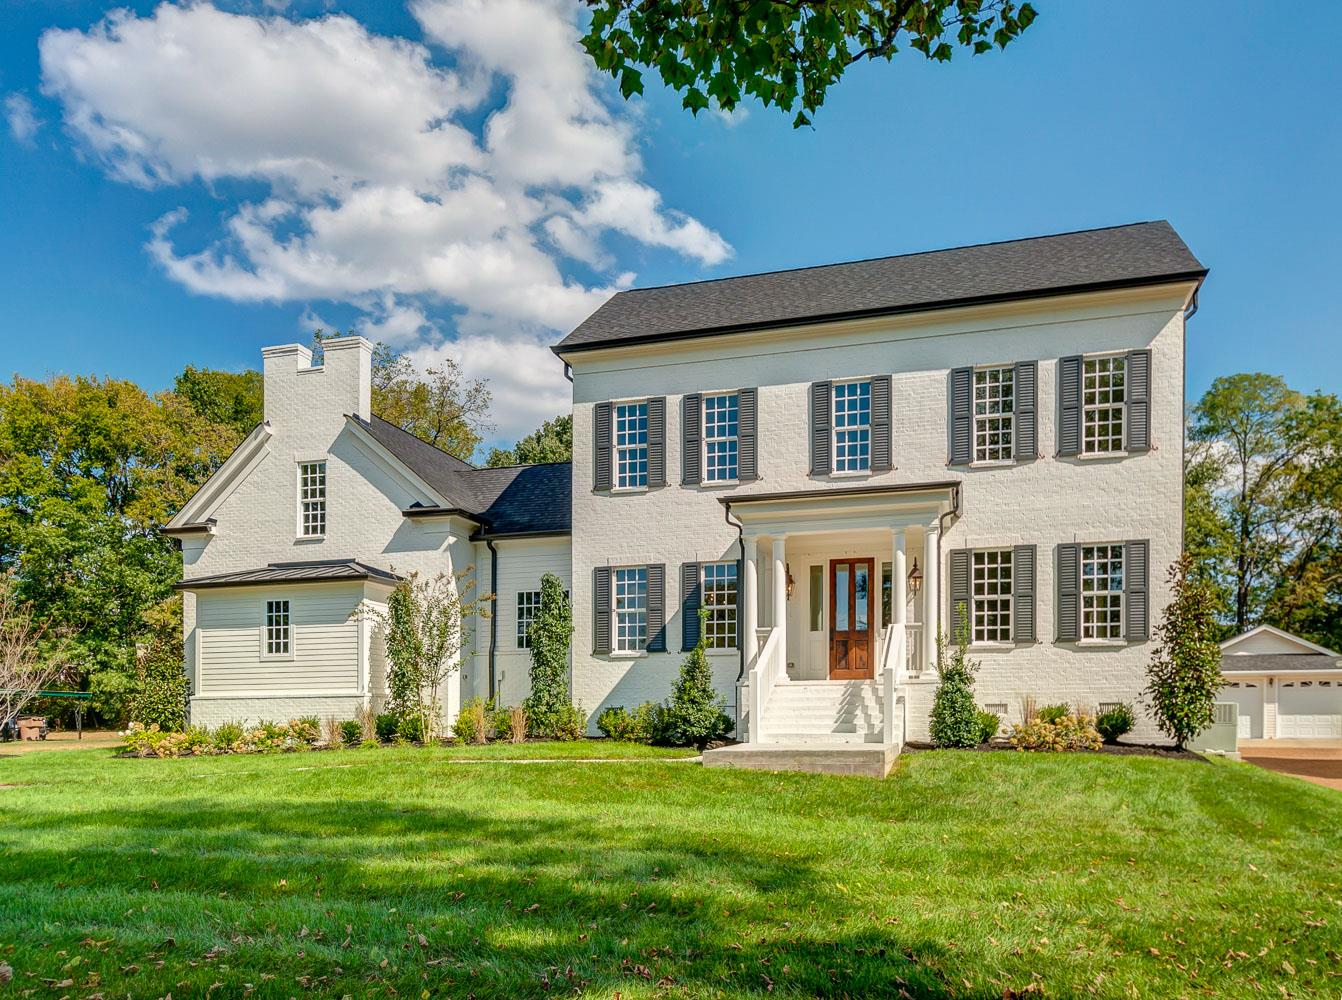 $1,889,000 - 4Br/5Ba -  for Sale in W M Cantrell, Nashville